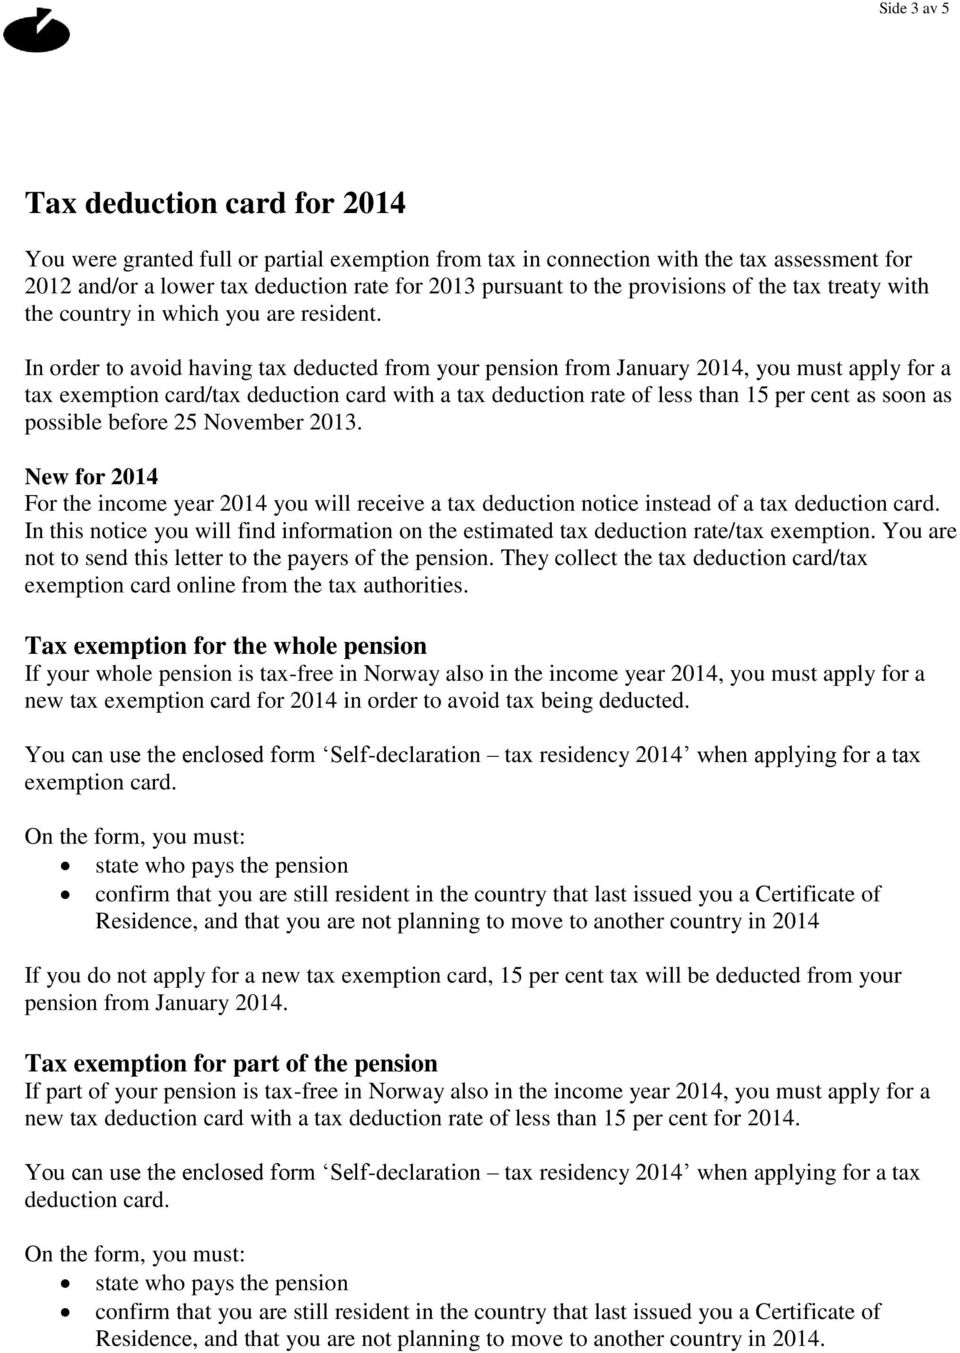 In order to avoid having tax deducted from your pension from January 2014, you must apply for a tax exemption card/tax deduction card with a tax deduction rate of less than 15 per cent as soon as